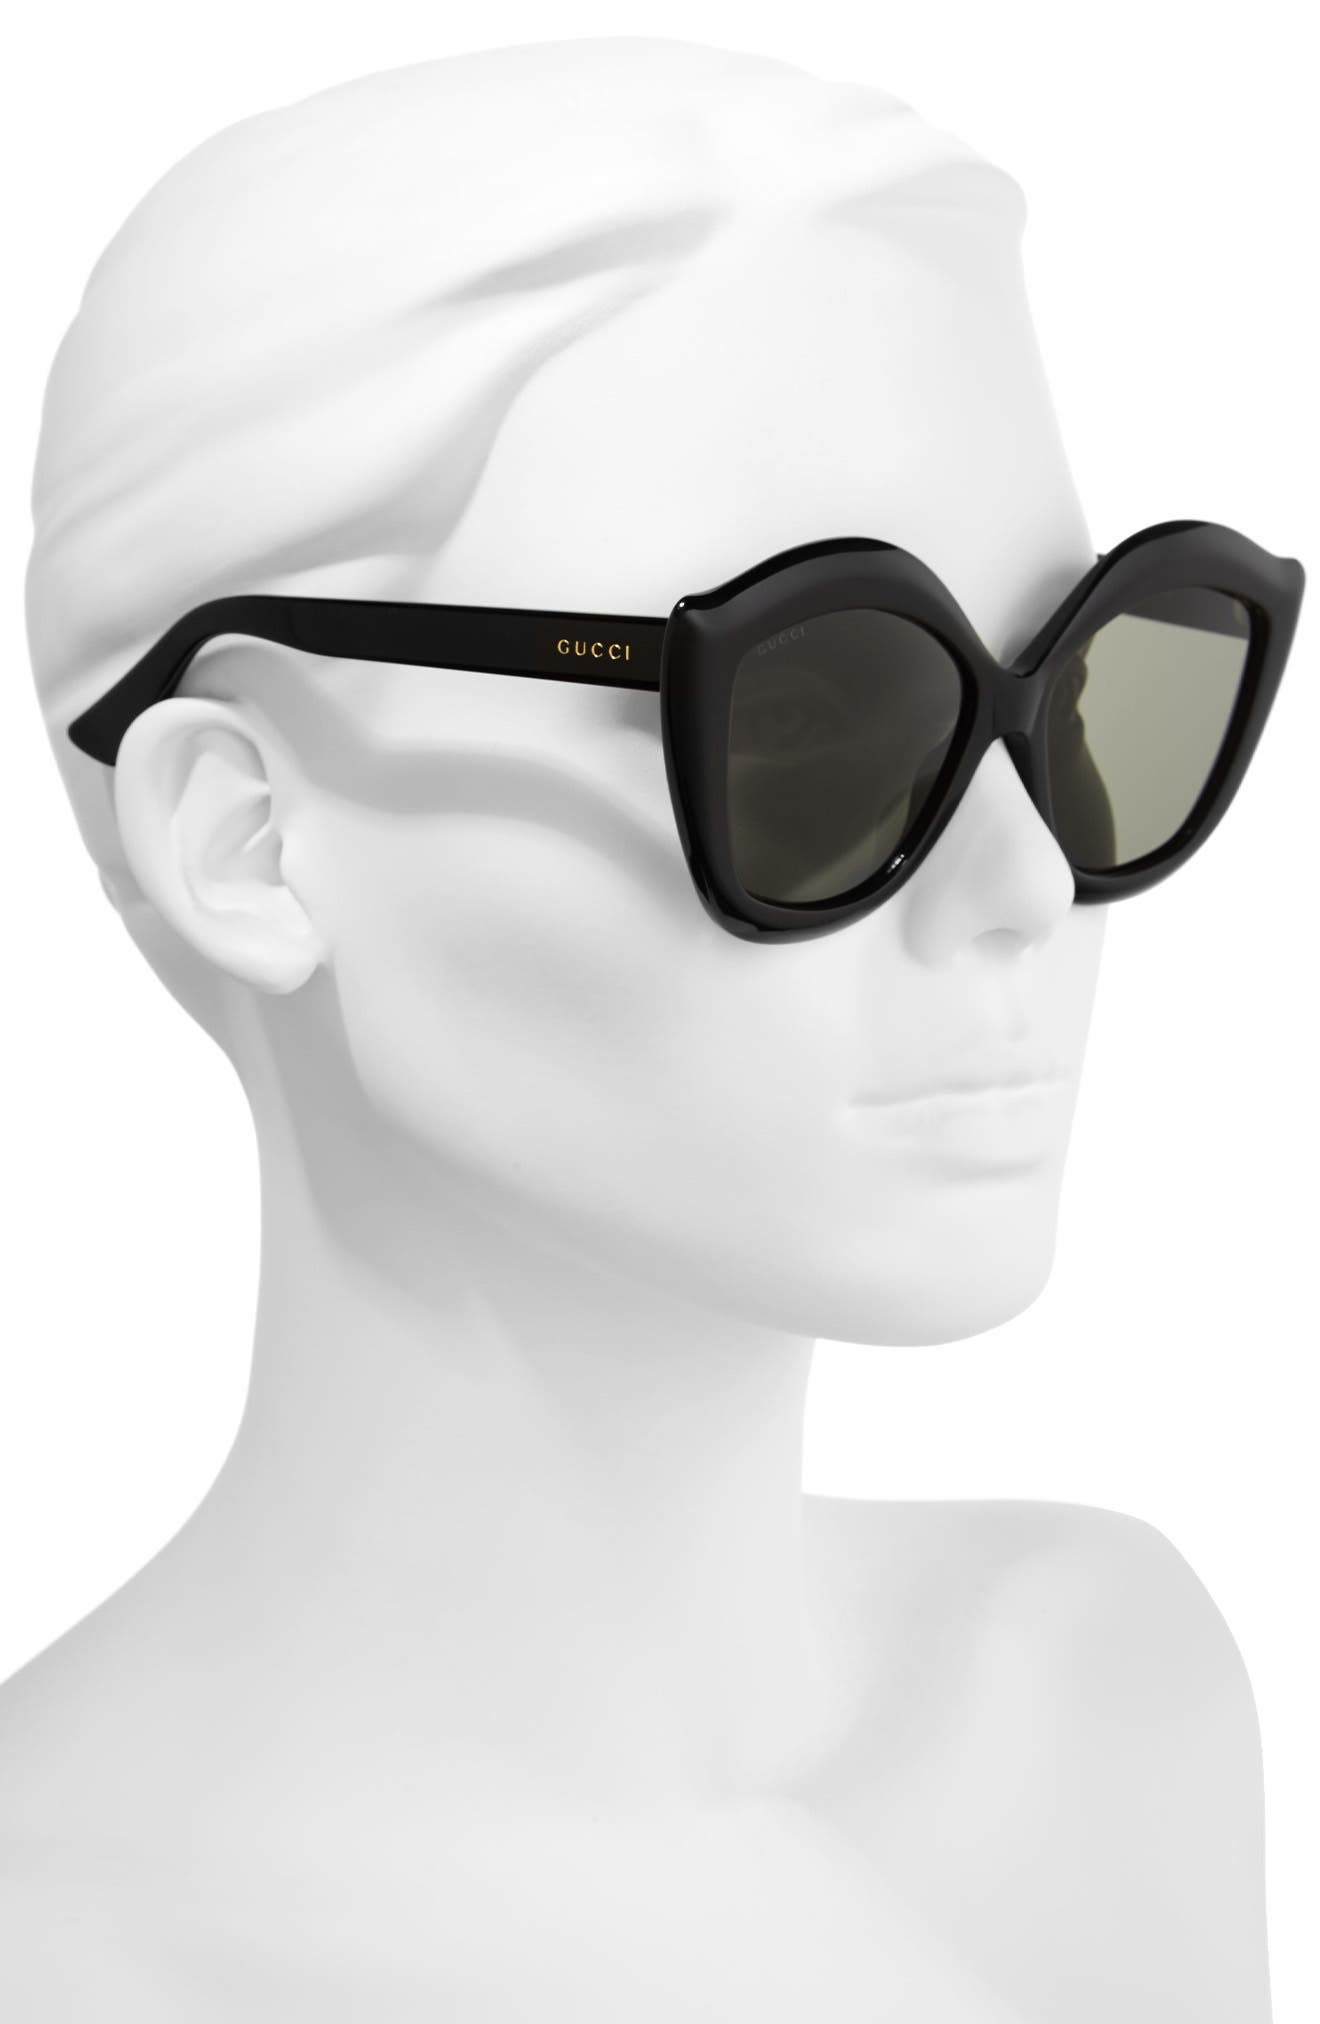 53mm Cat Eye Sunglasses,                             Alternate thumbnail 2, color,                             001